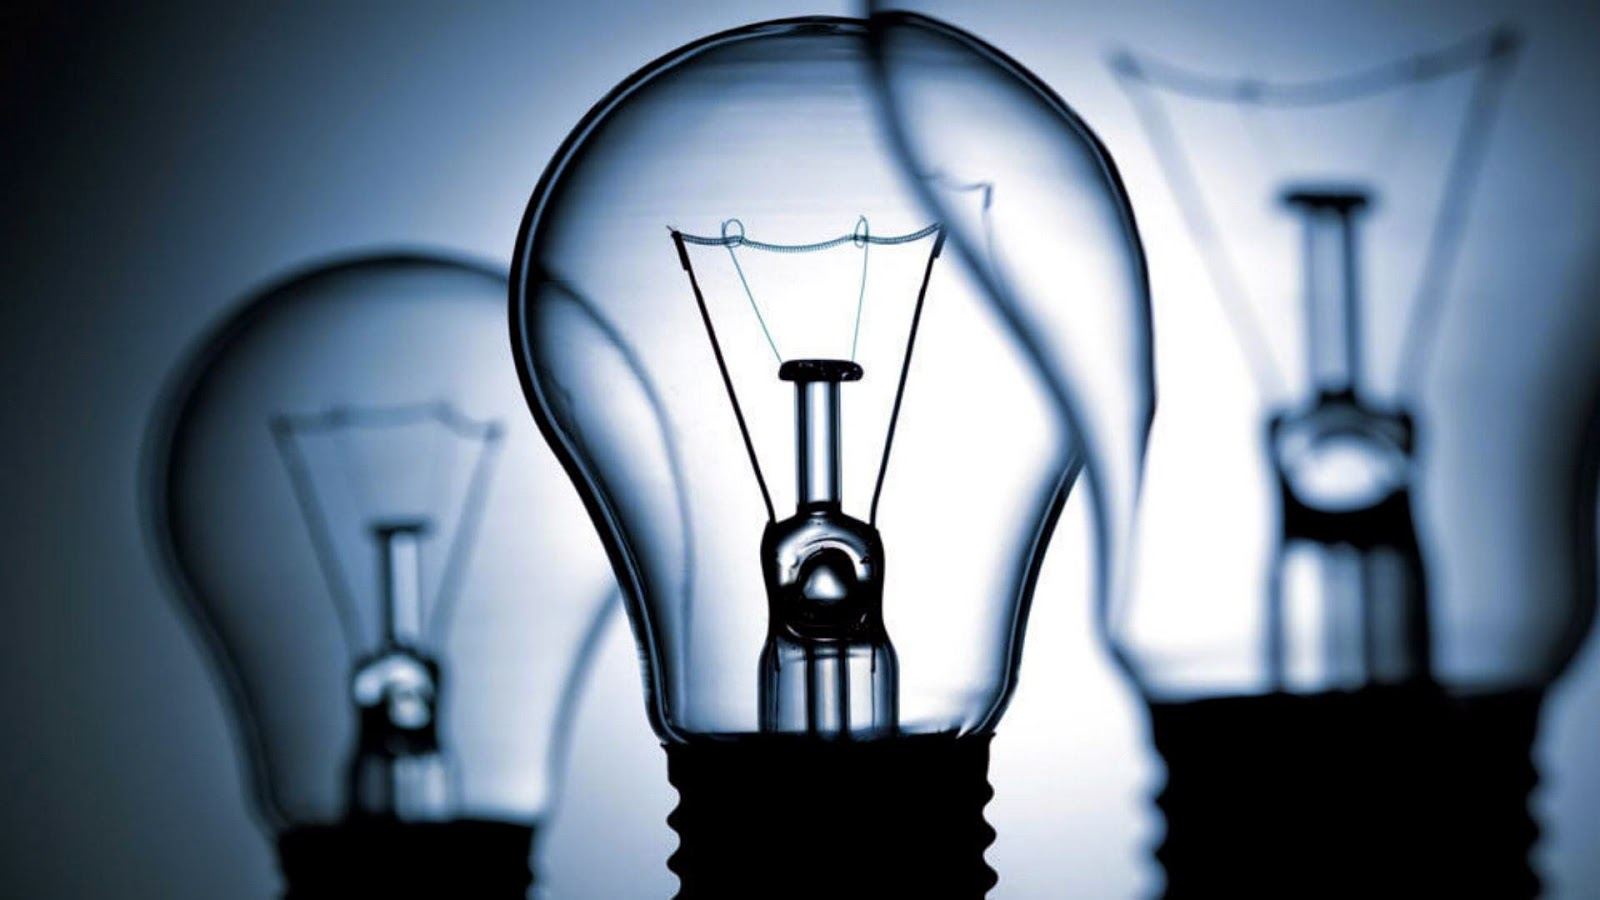 Science online uses of light bulbs and their structure Light bulb lamps